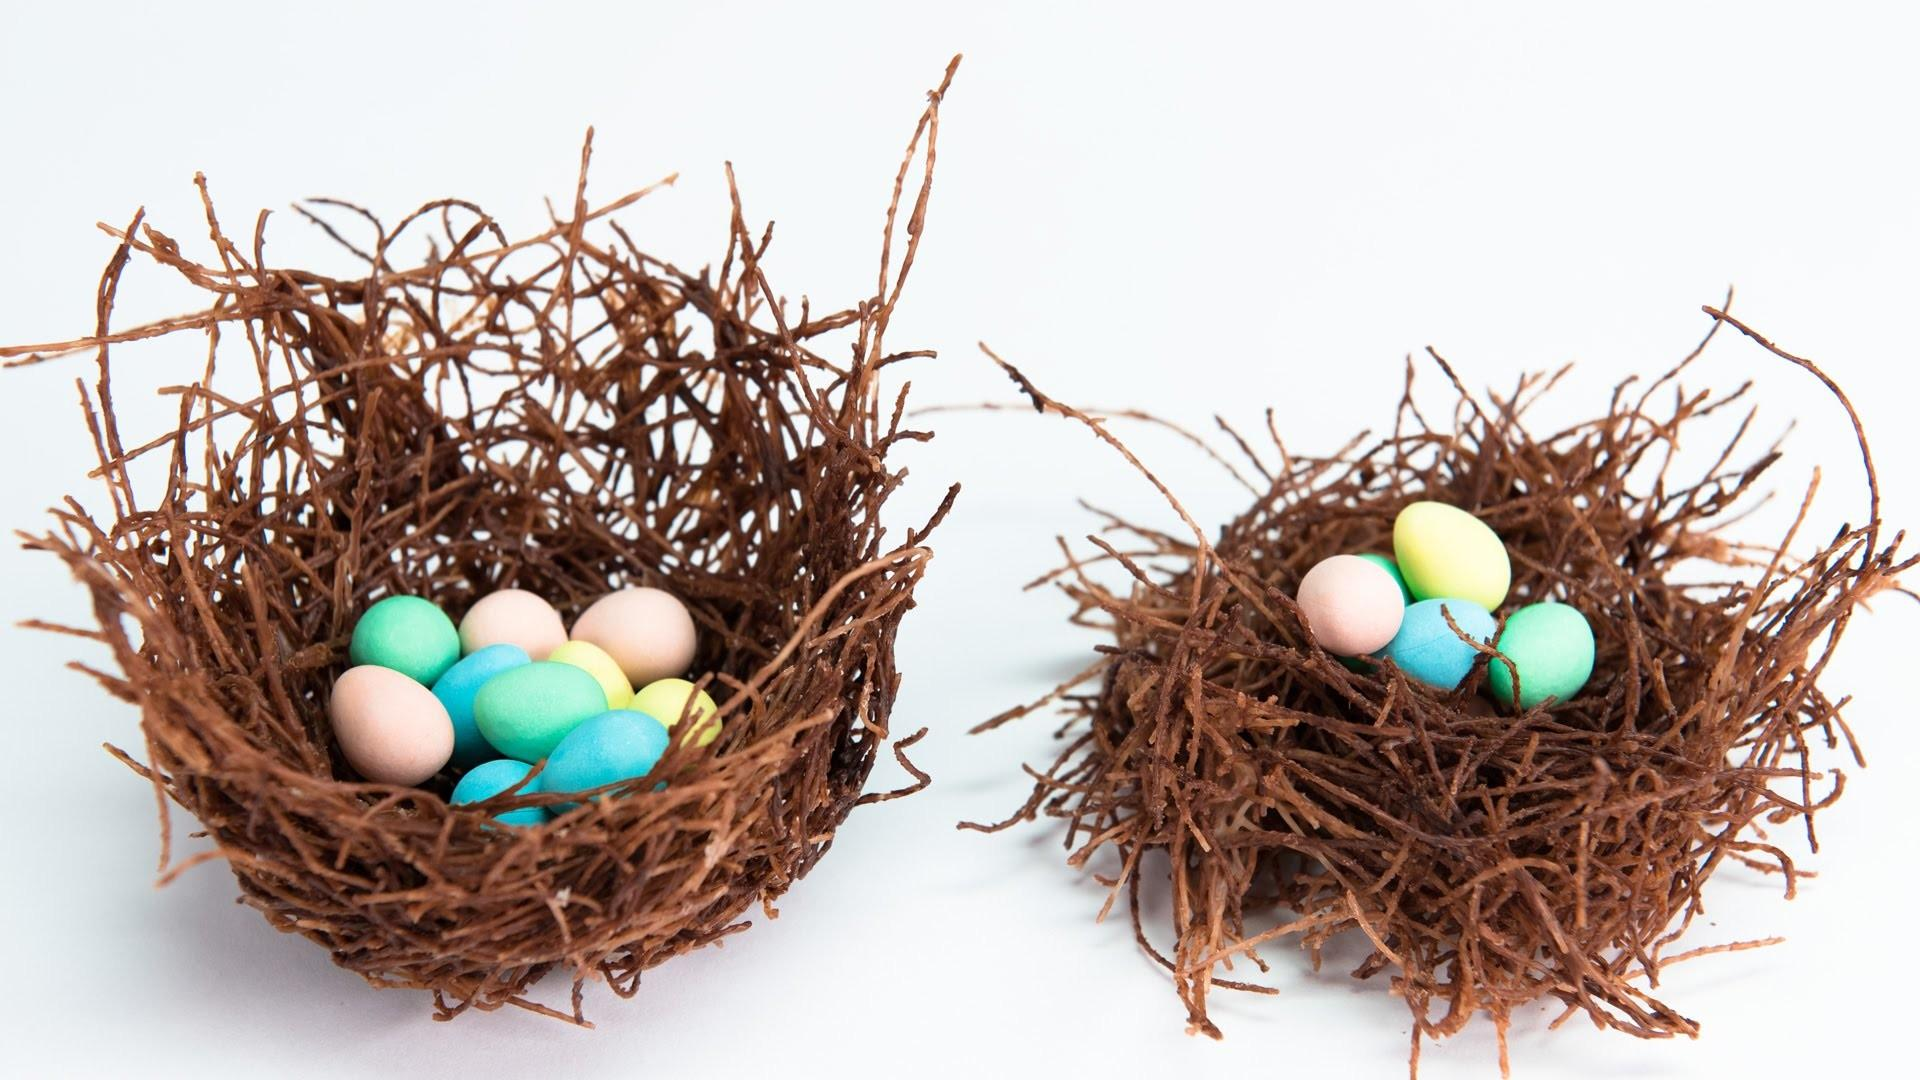 Edible Chocolate Nests Filled Cadbury Mini Eggs